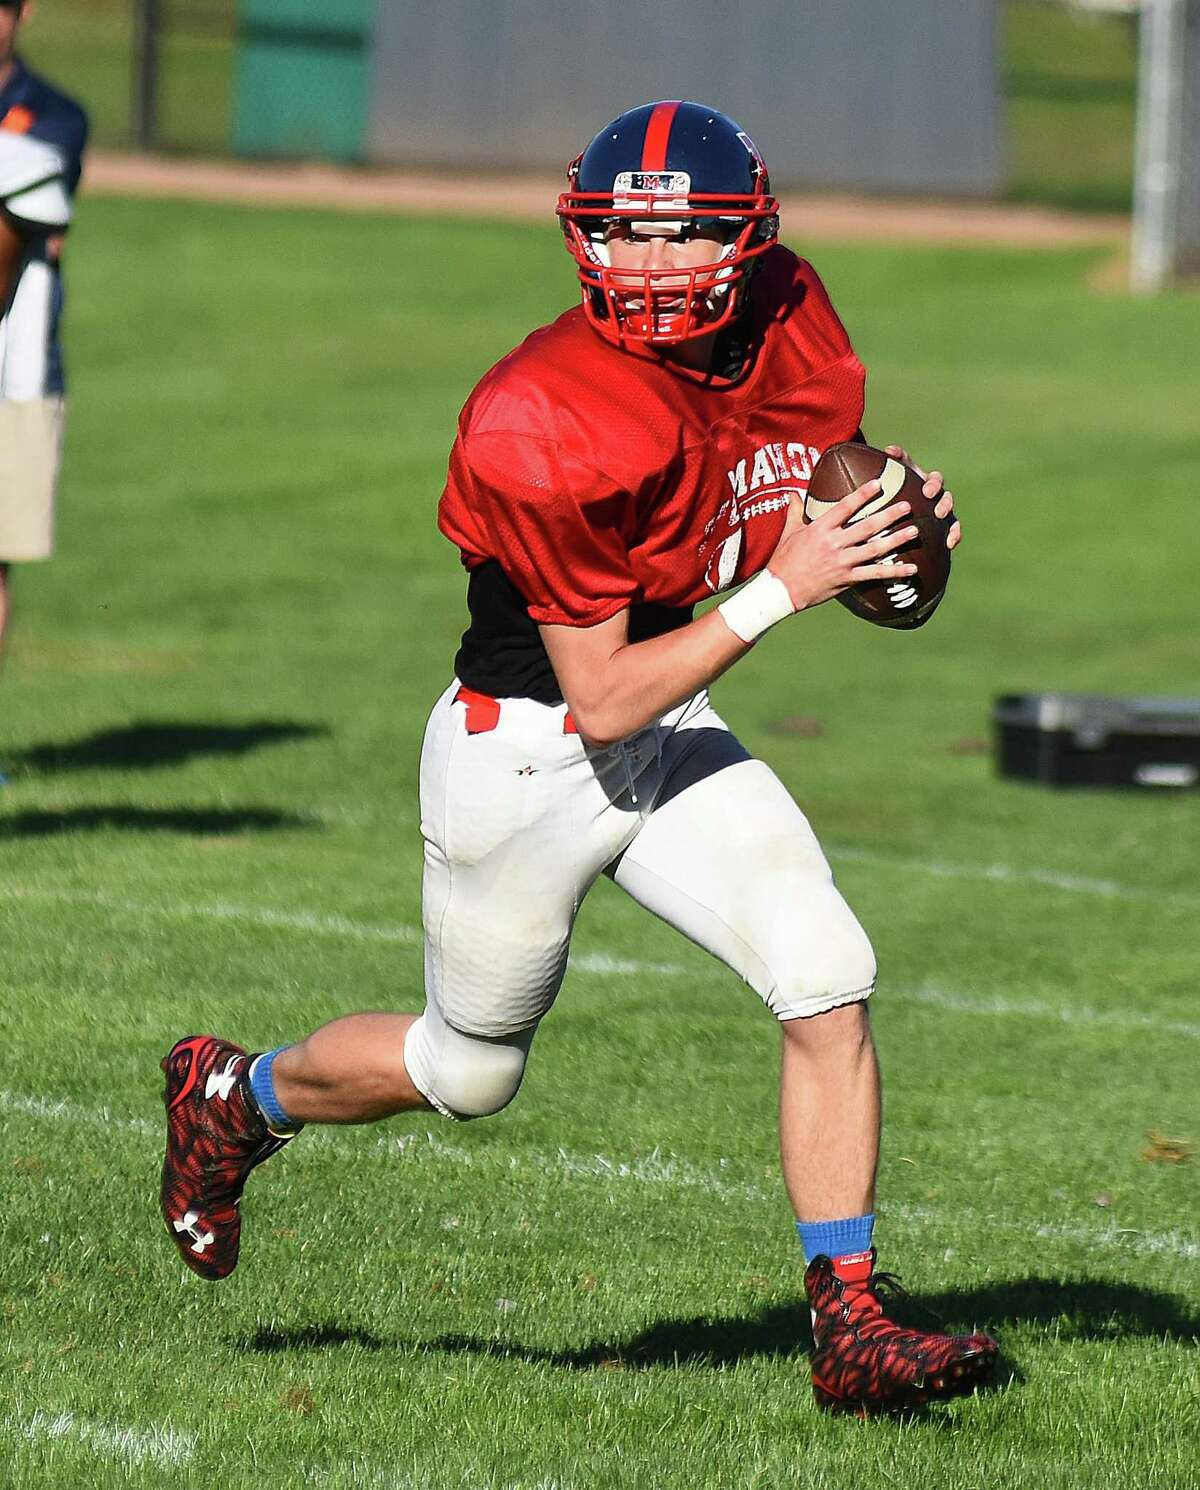 Brien McMahon quarterback Tyler Holloran scrambles out of the pocket while looking to pass during the Senators game against Norwalk in the Wilton Football Jamboree on Wednesday. Seven teams took part in the annual affair.